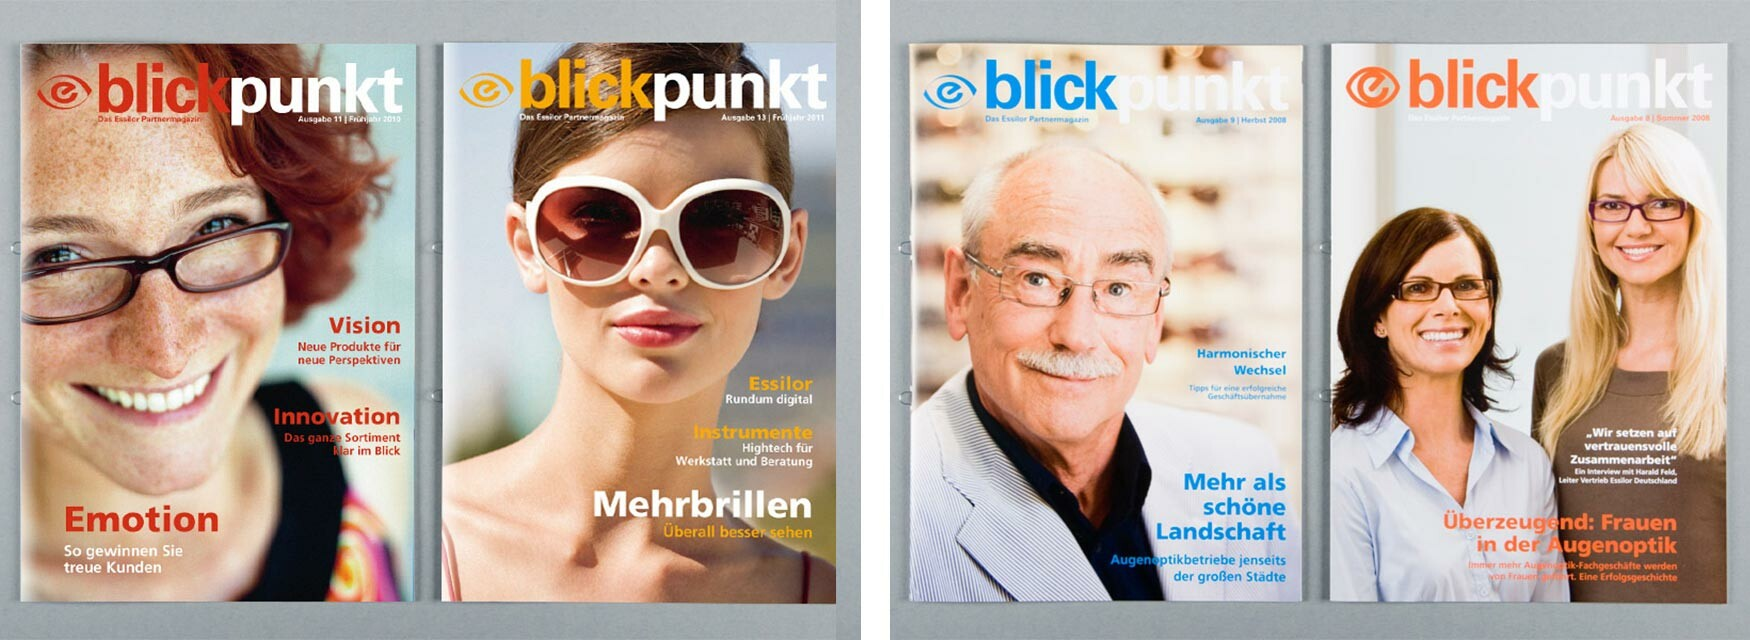 Content Relations Campaigns Essilor